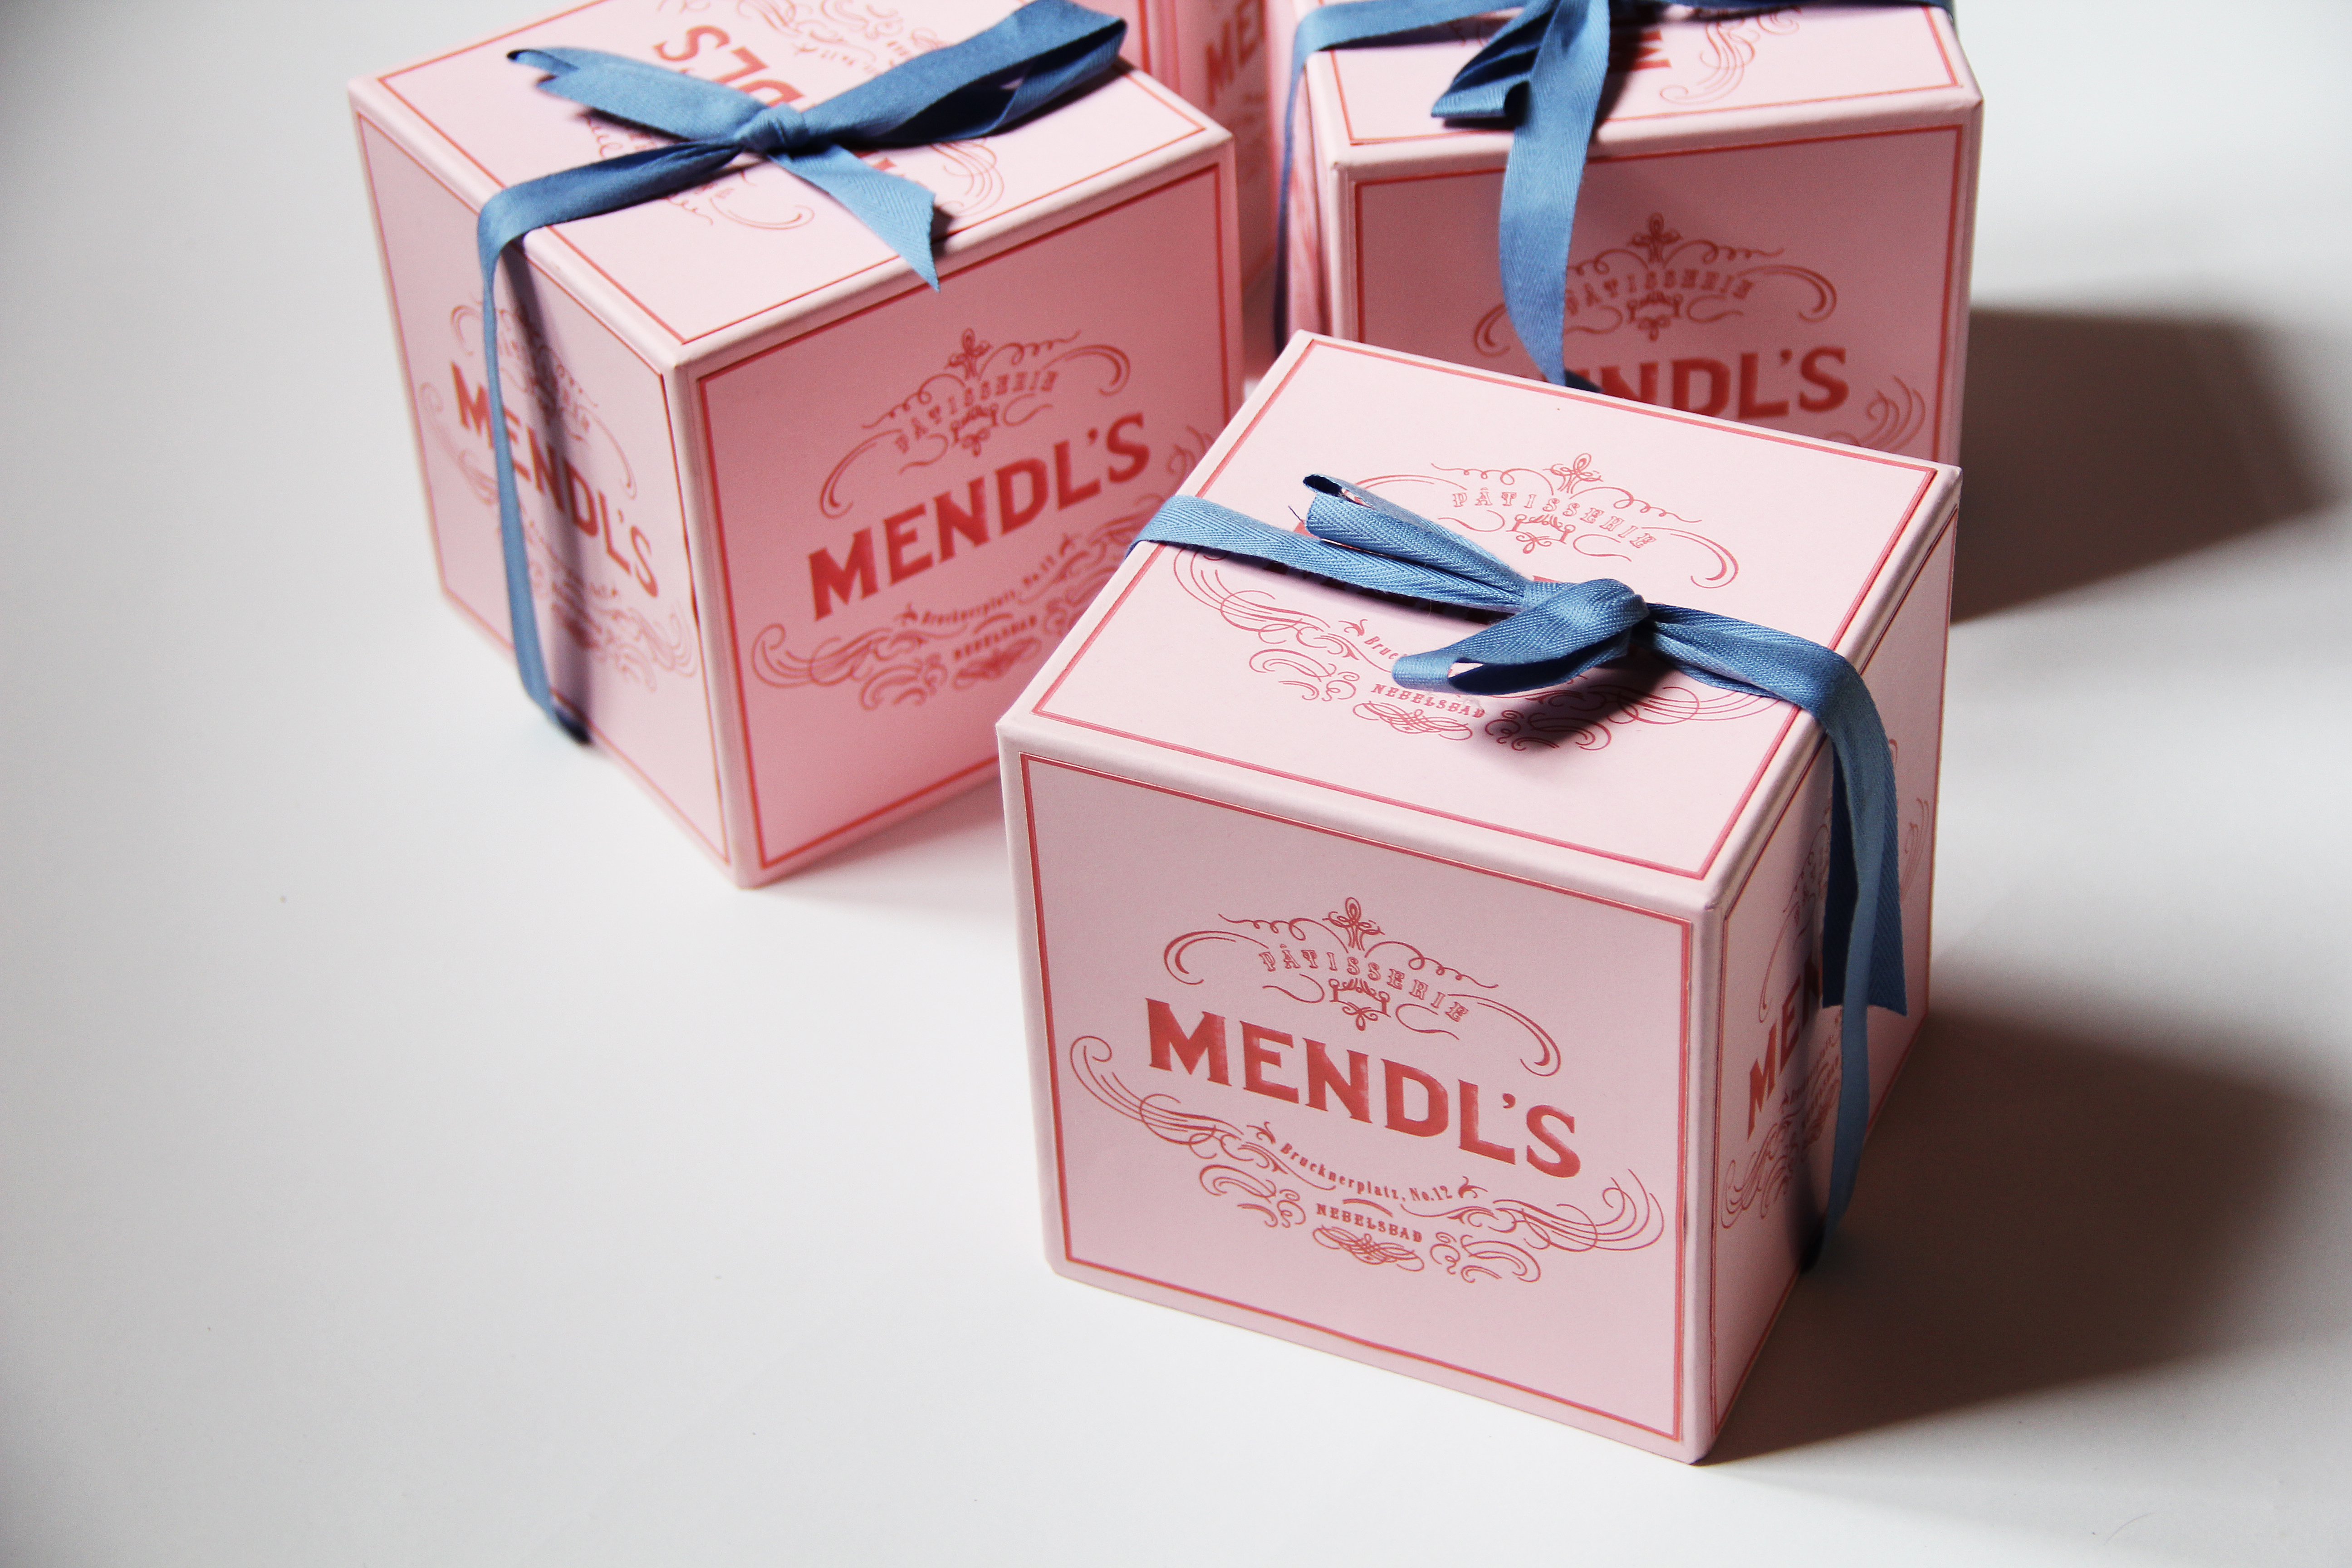 Mendl's box. Graphic design for film by Annie Atkins. For Wes Anderson's The Grand Budapest Hotel.